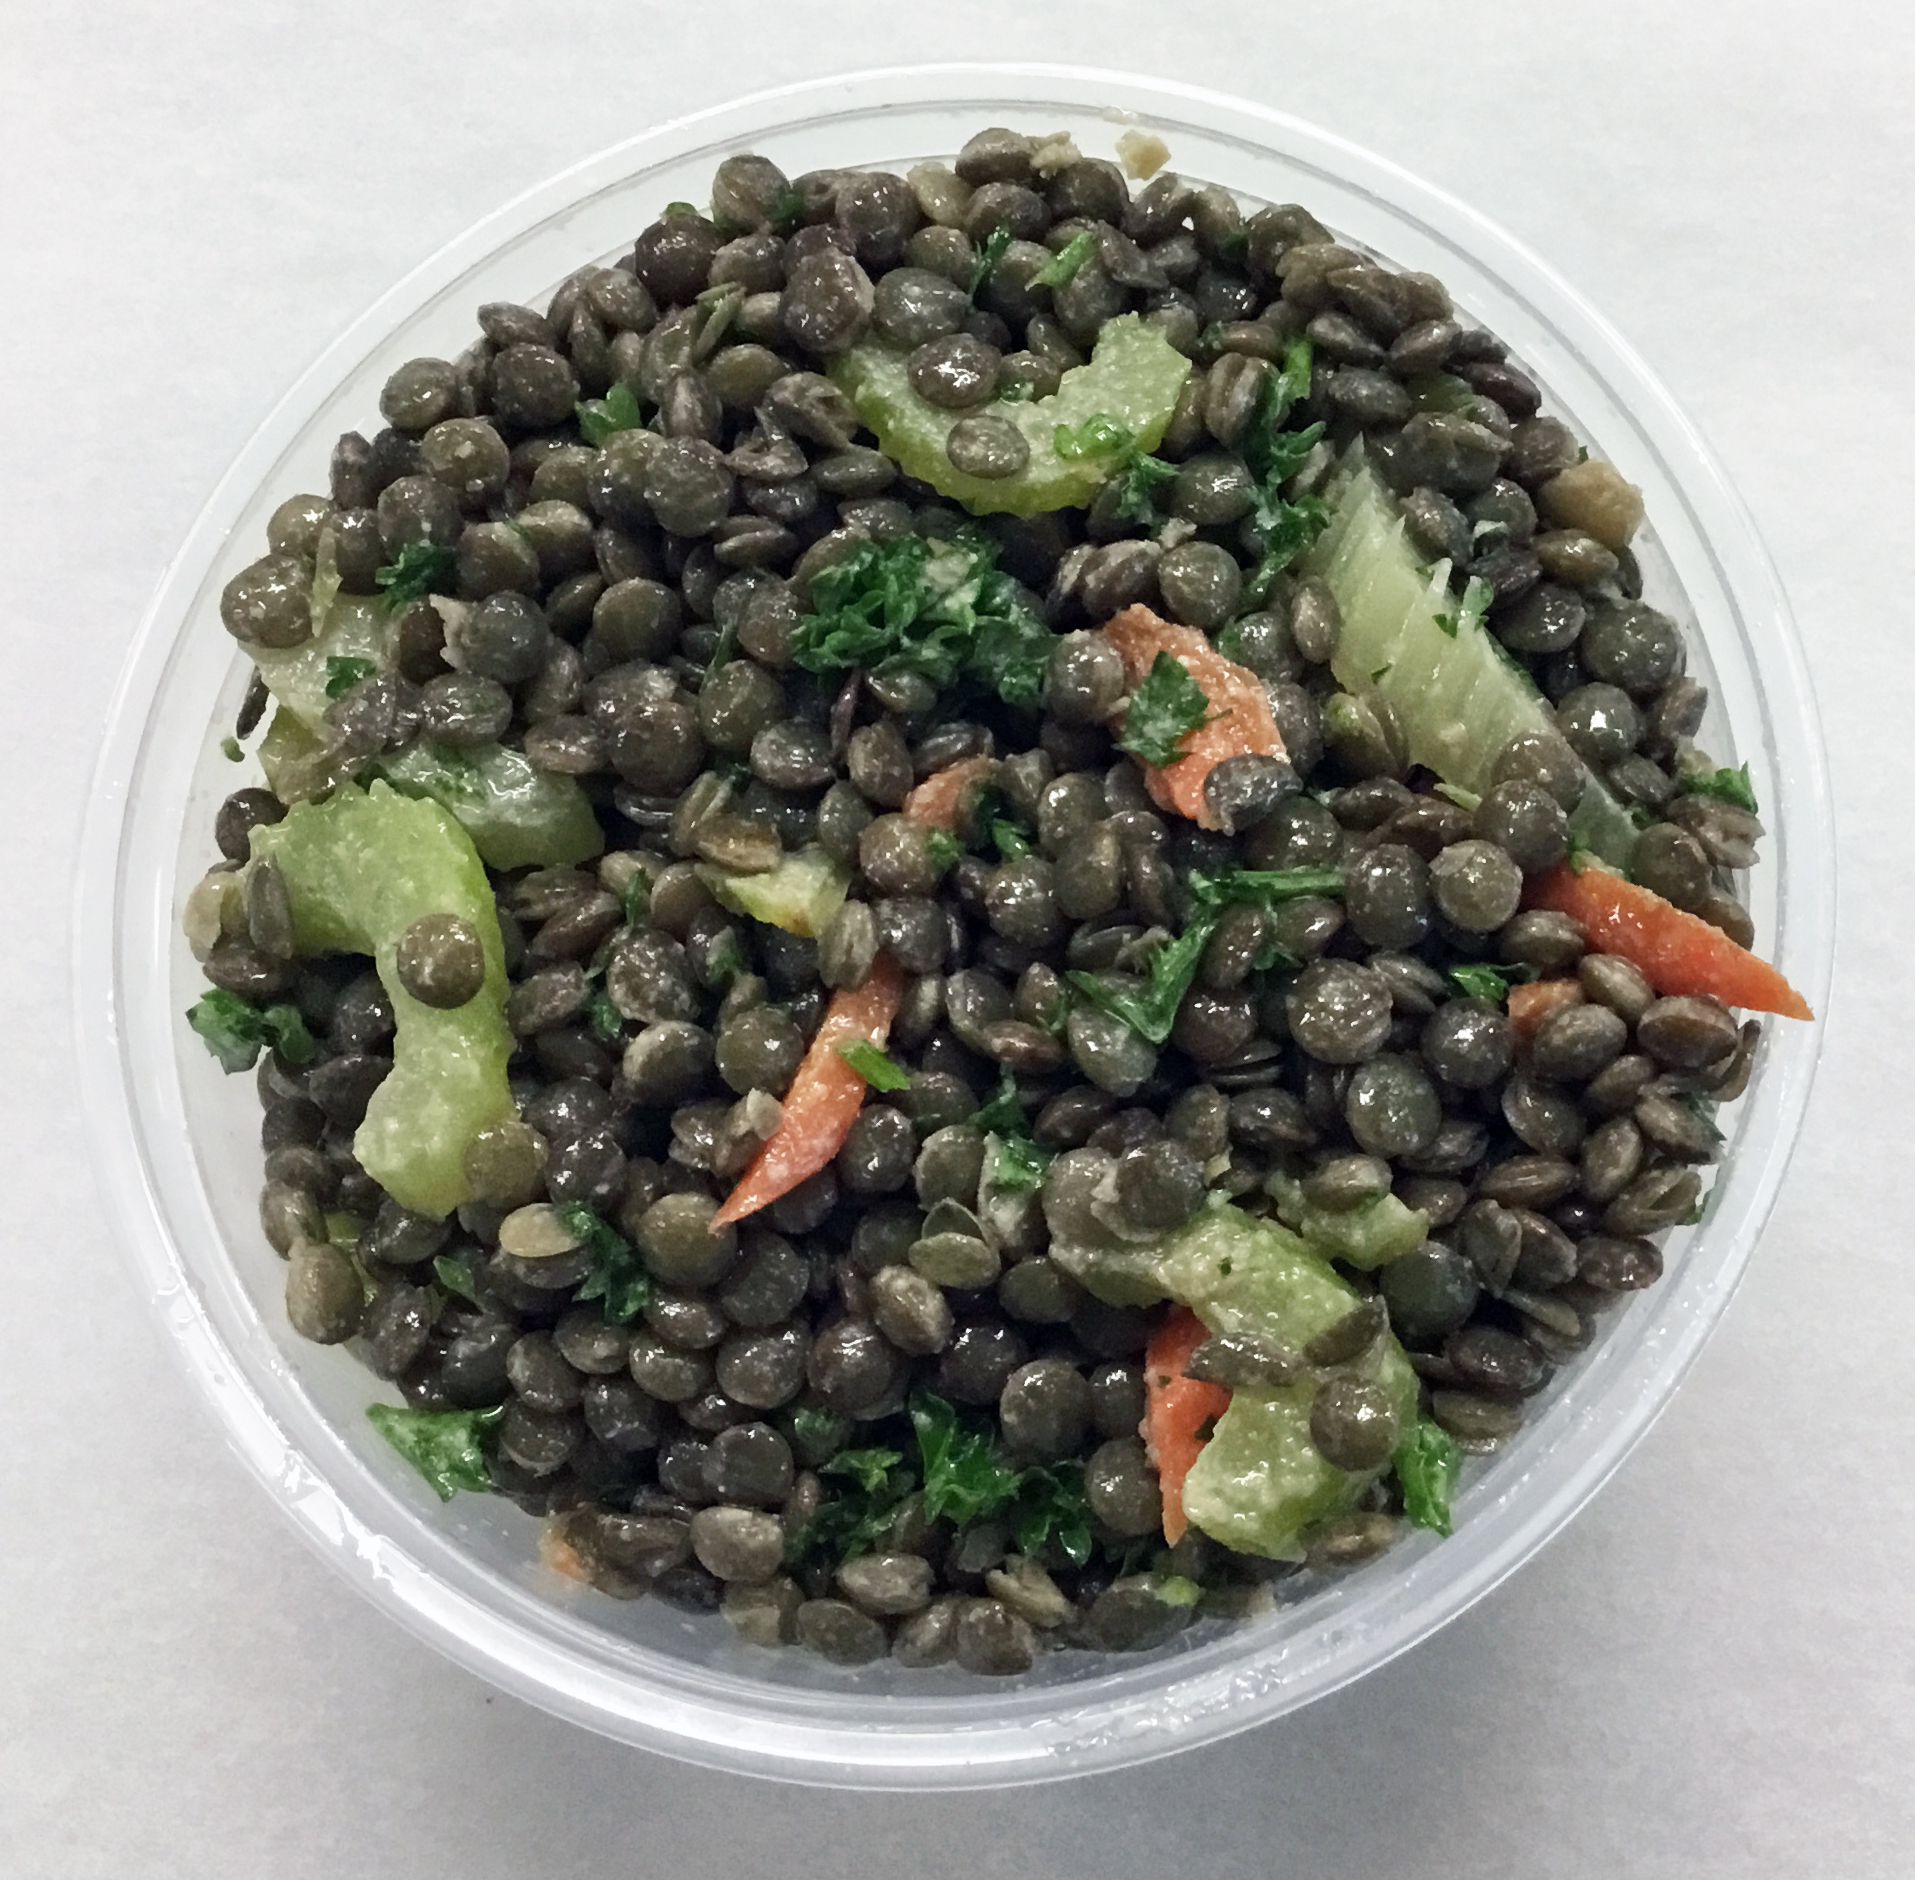 French lentils with carrot, celery, parsley and an apple cider vinegar dressing.